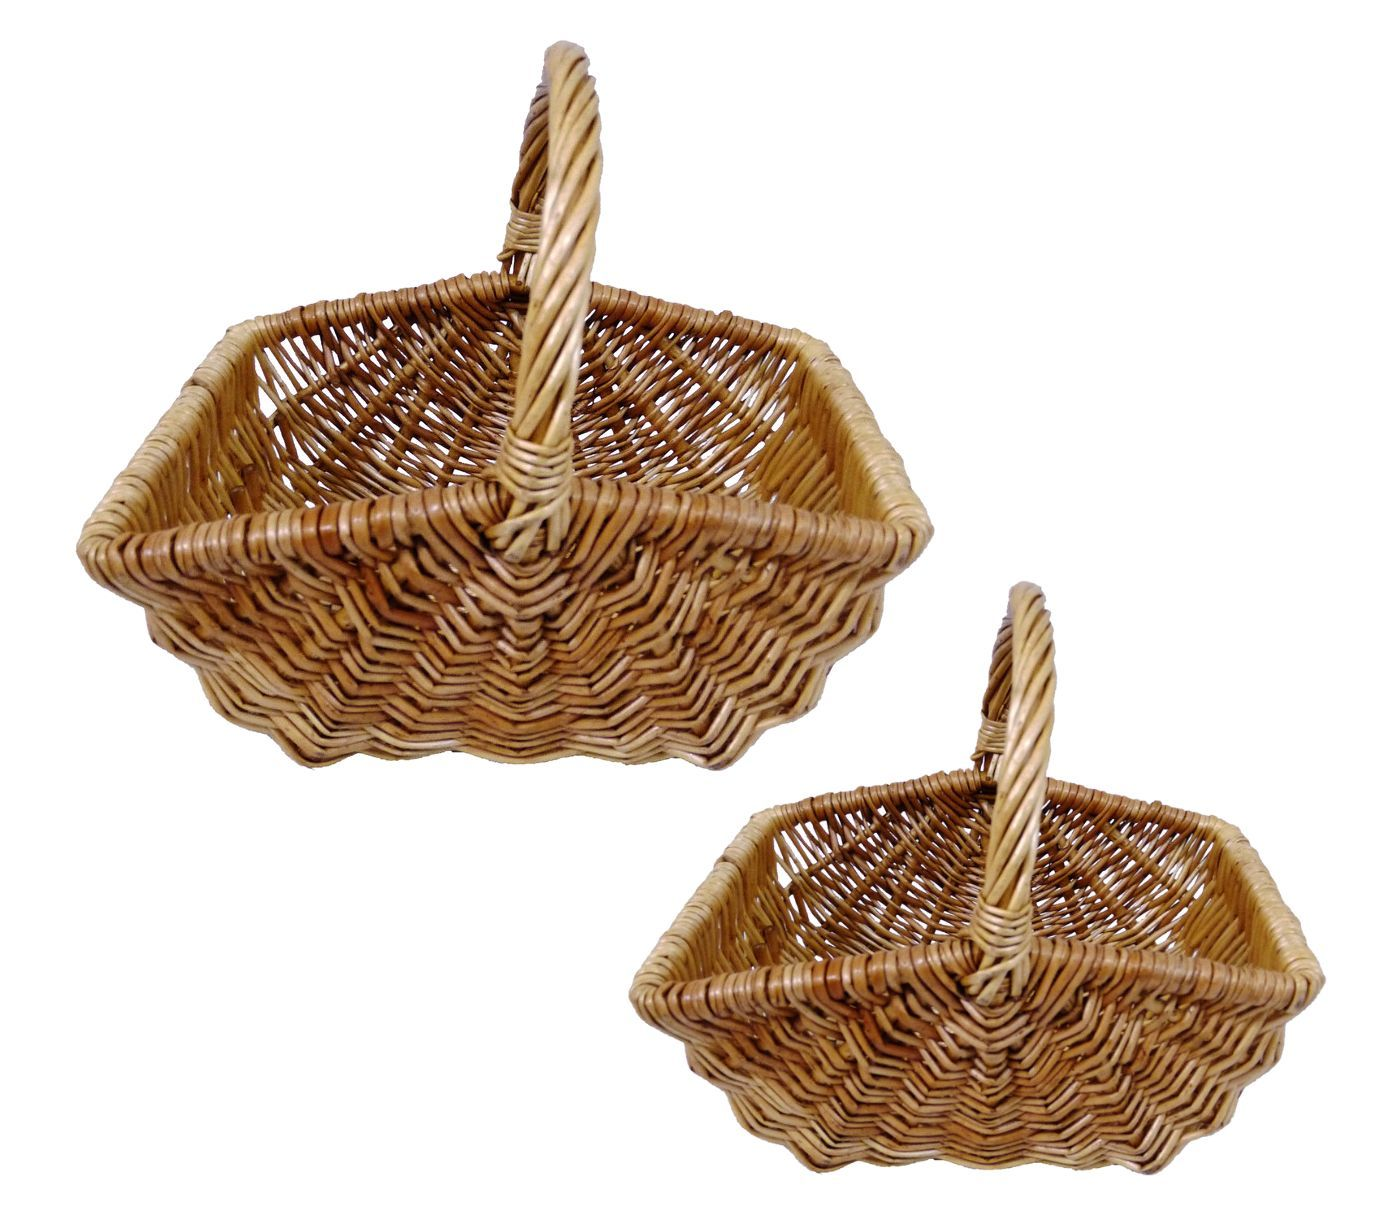 Flower girl baskets wicker : Wedding confetti petal flower girl rectangular wicker